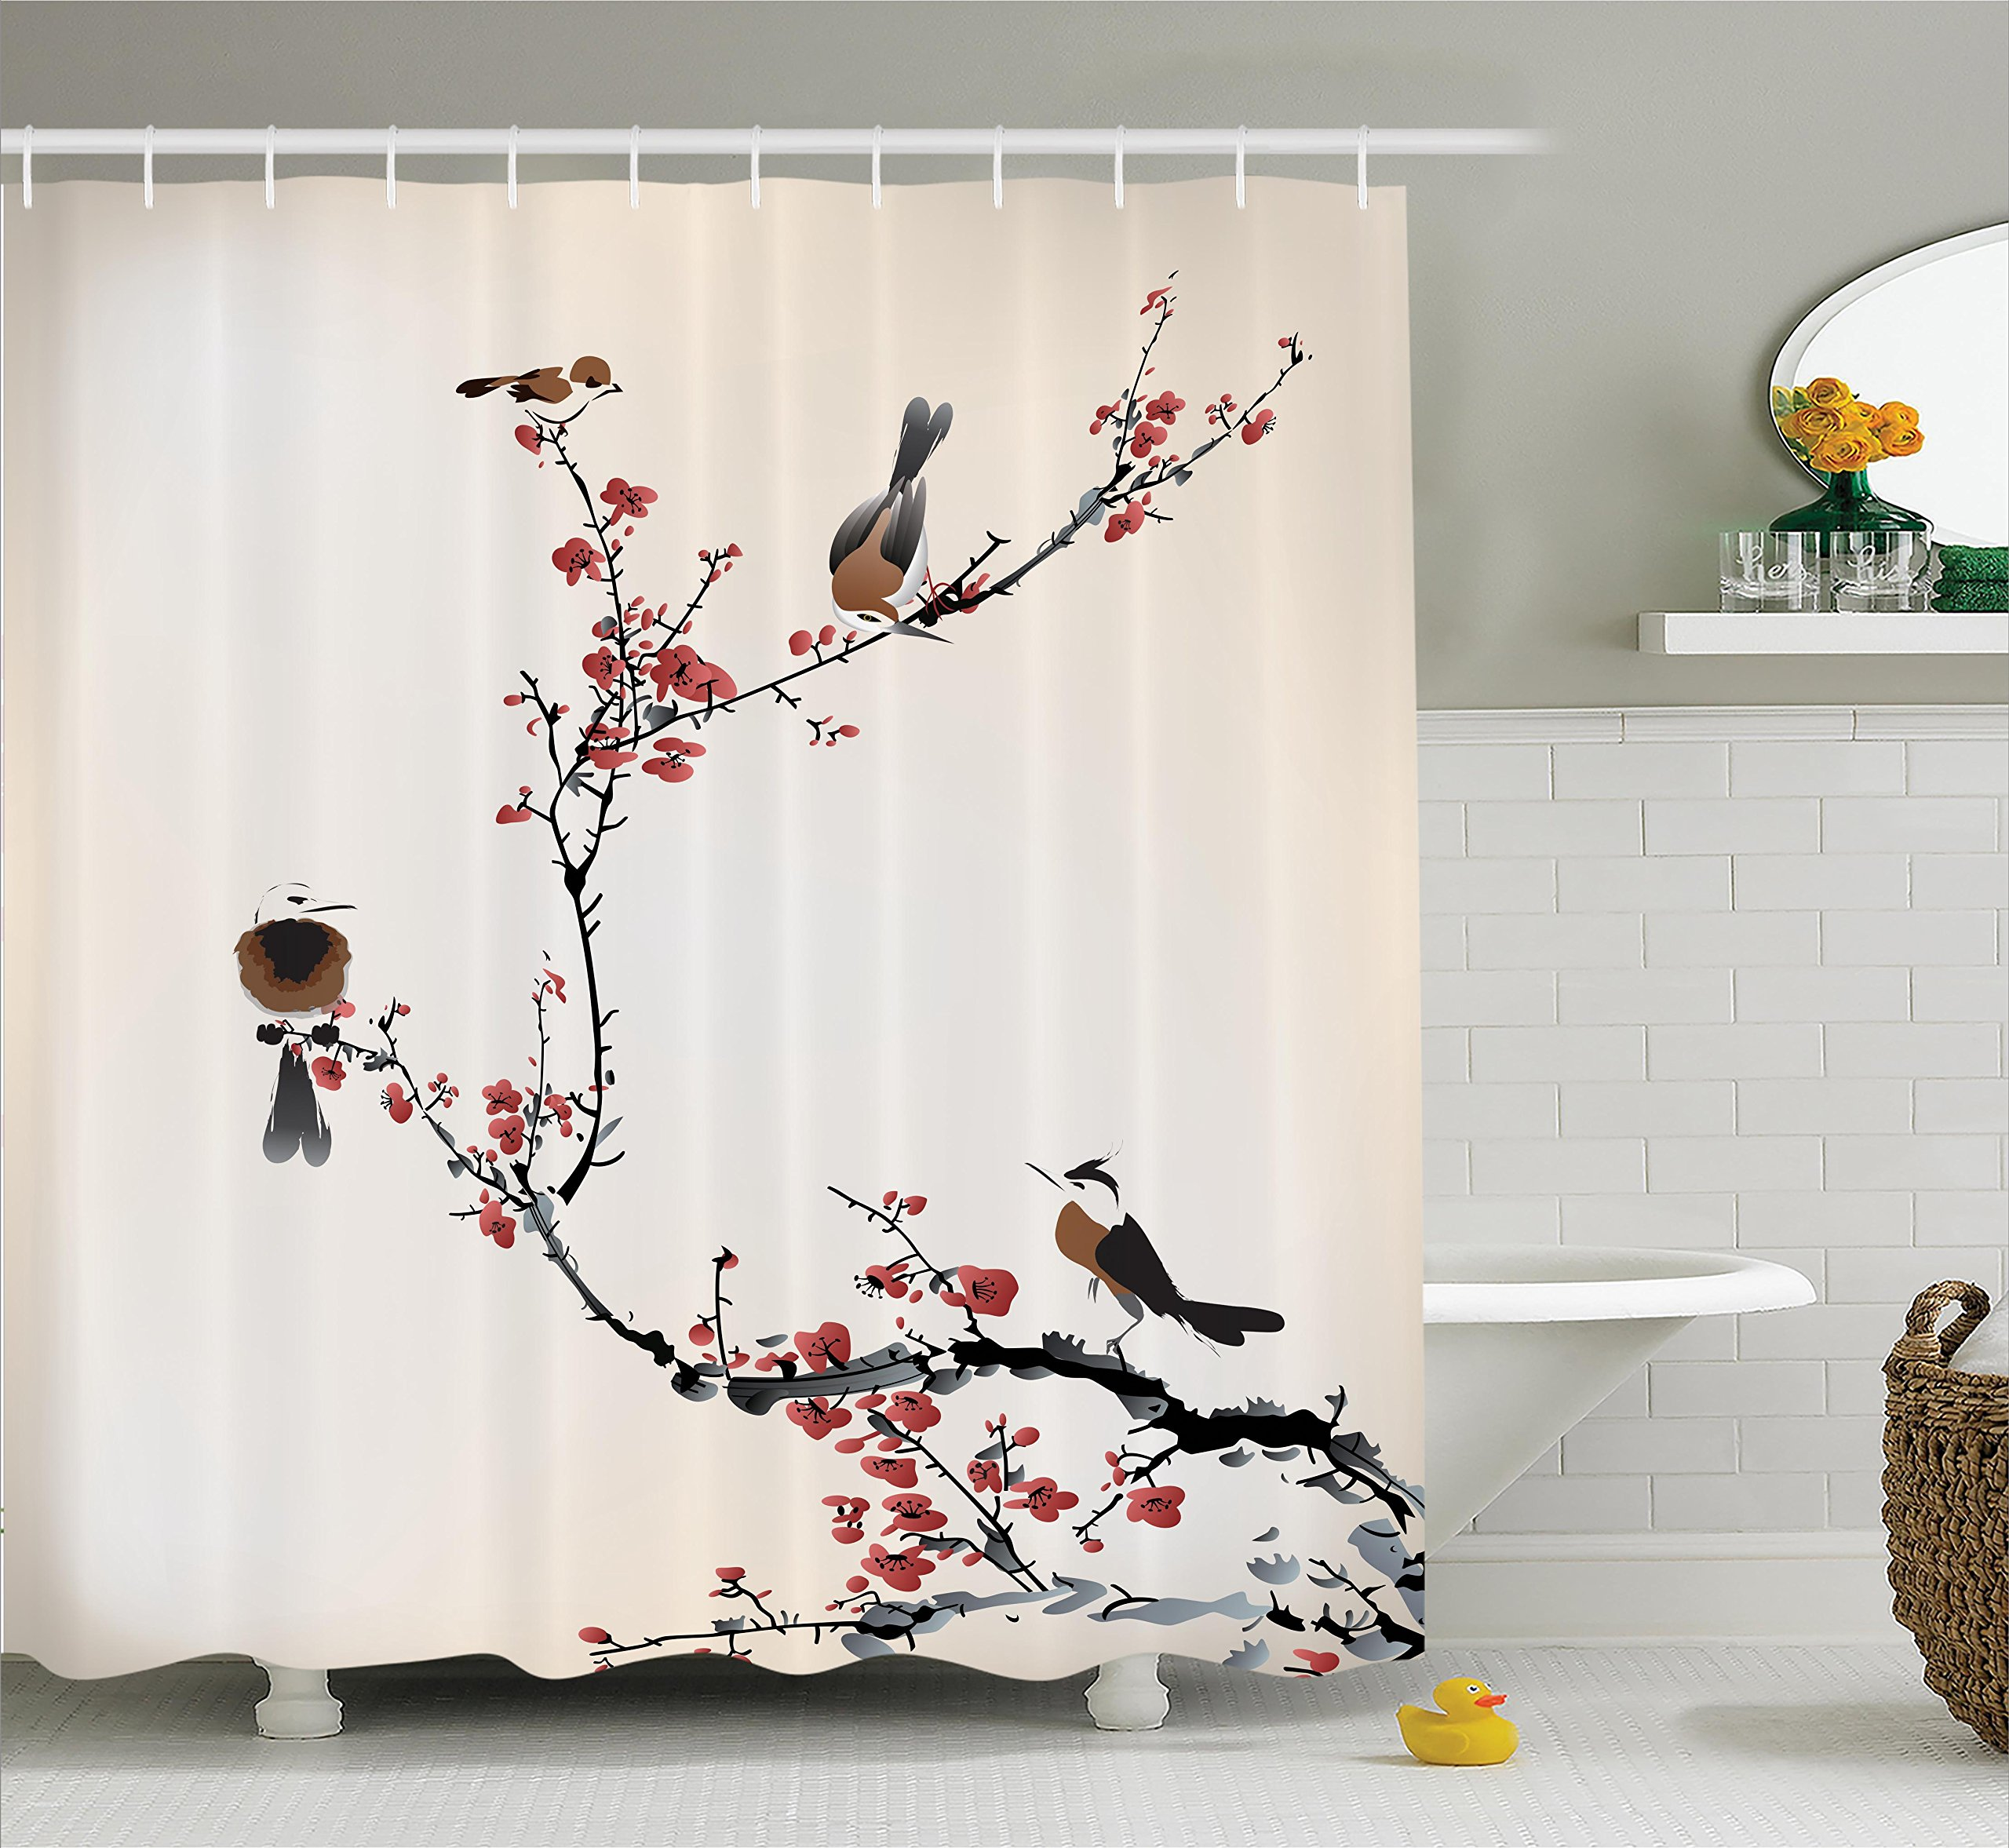 Best japanese shower curtains for bathroom | Amazon.com